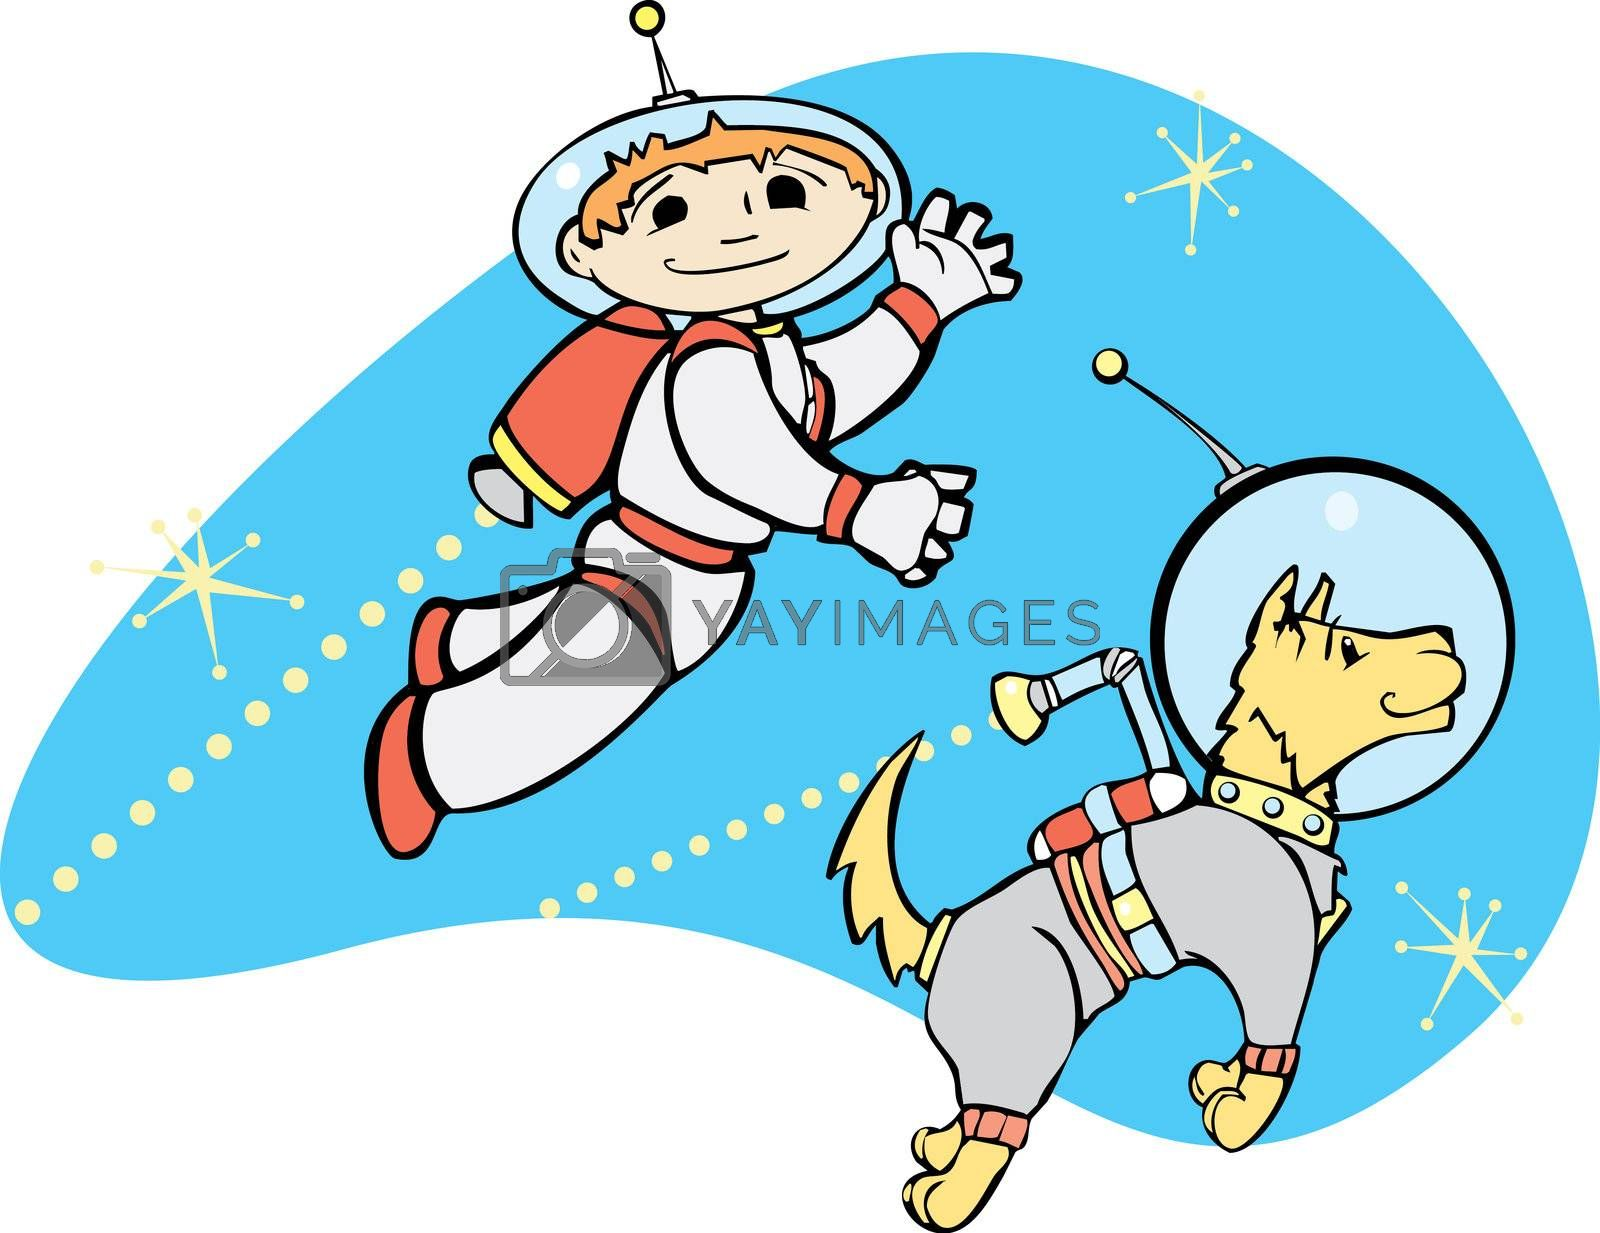 Retro boy in jet pack flies through space with his dog.